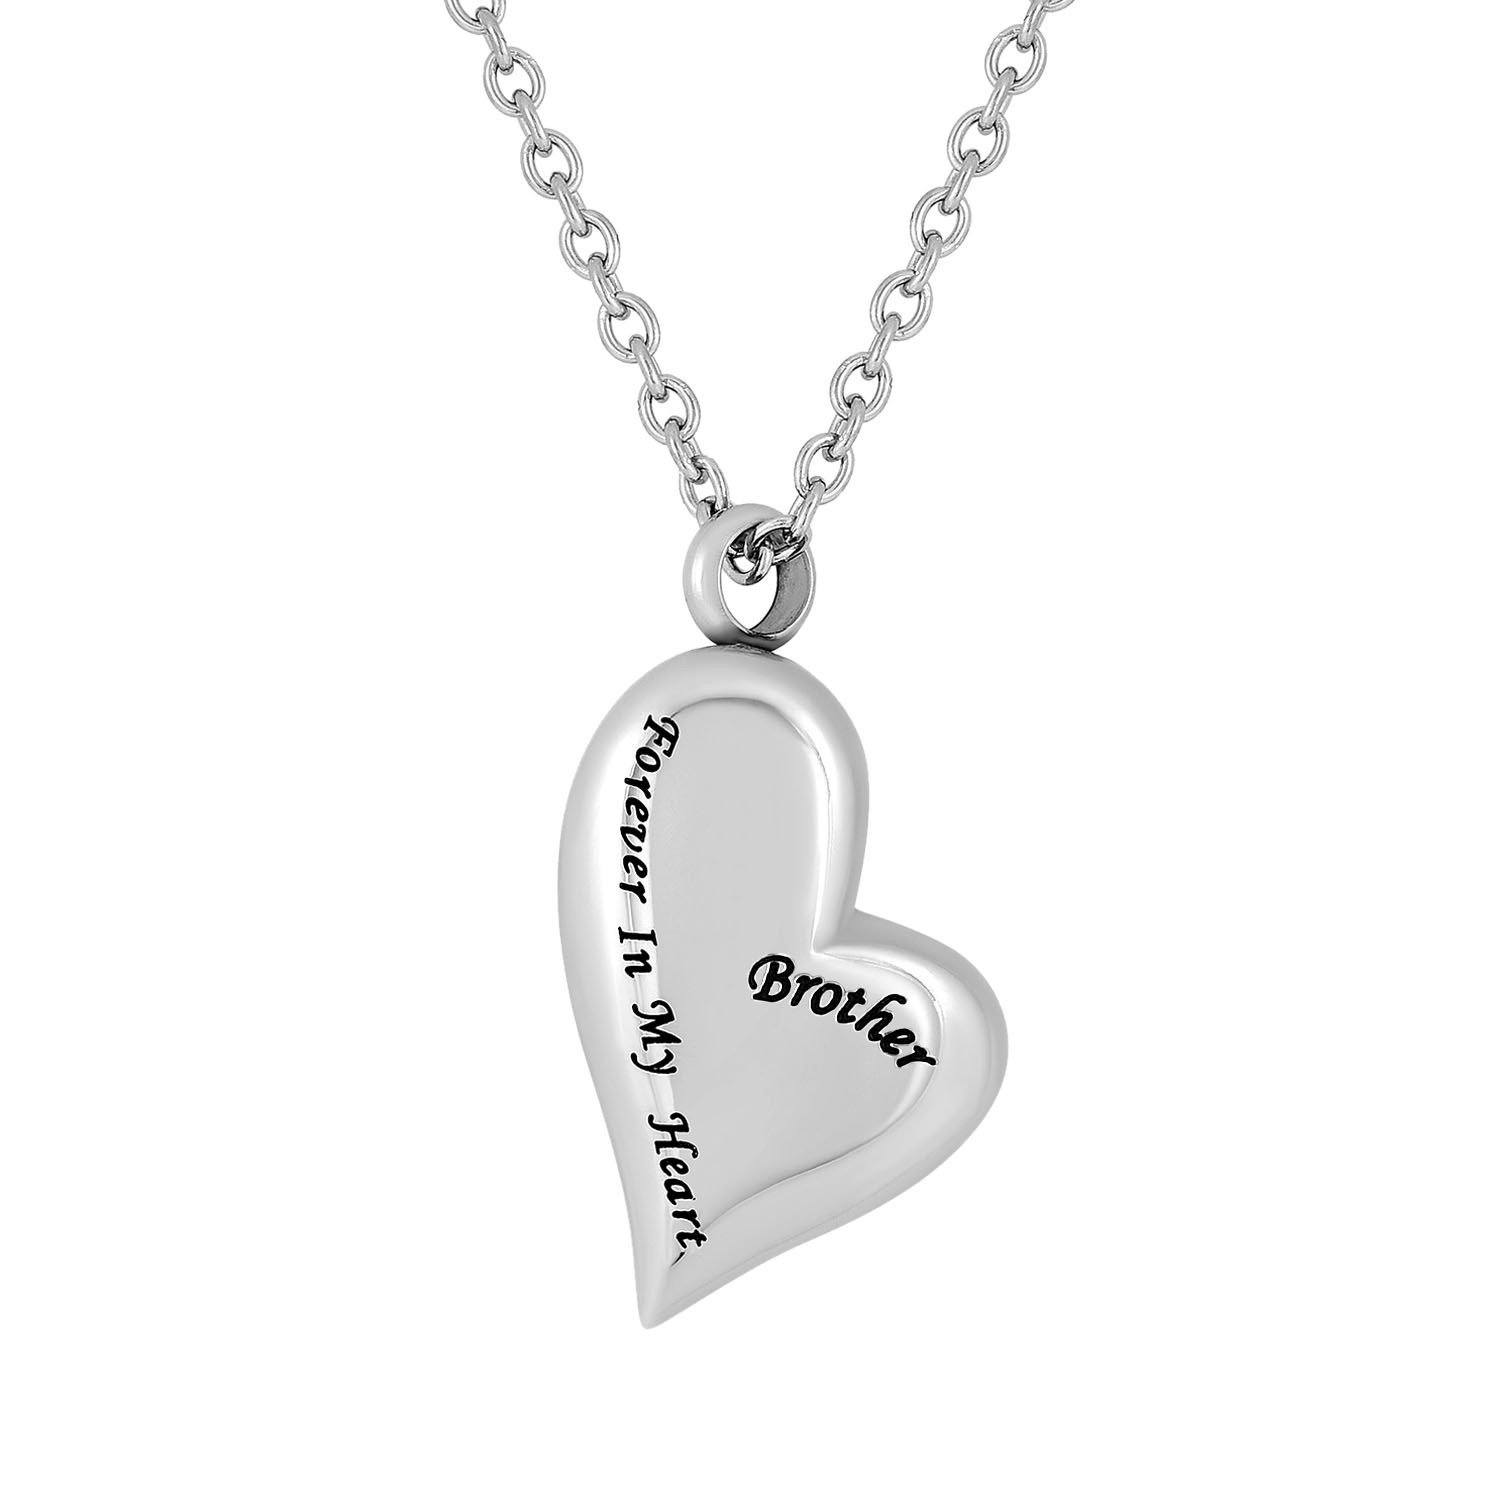 london essentials links en jewelry gb of sterling heart amp pave silver hires necklace jewellery and diamond